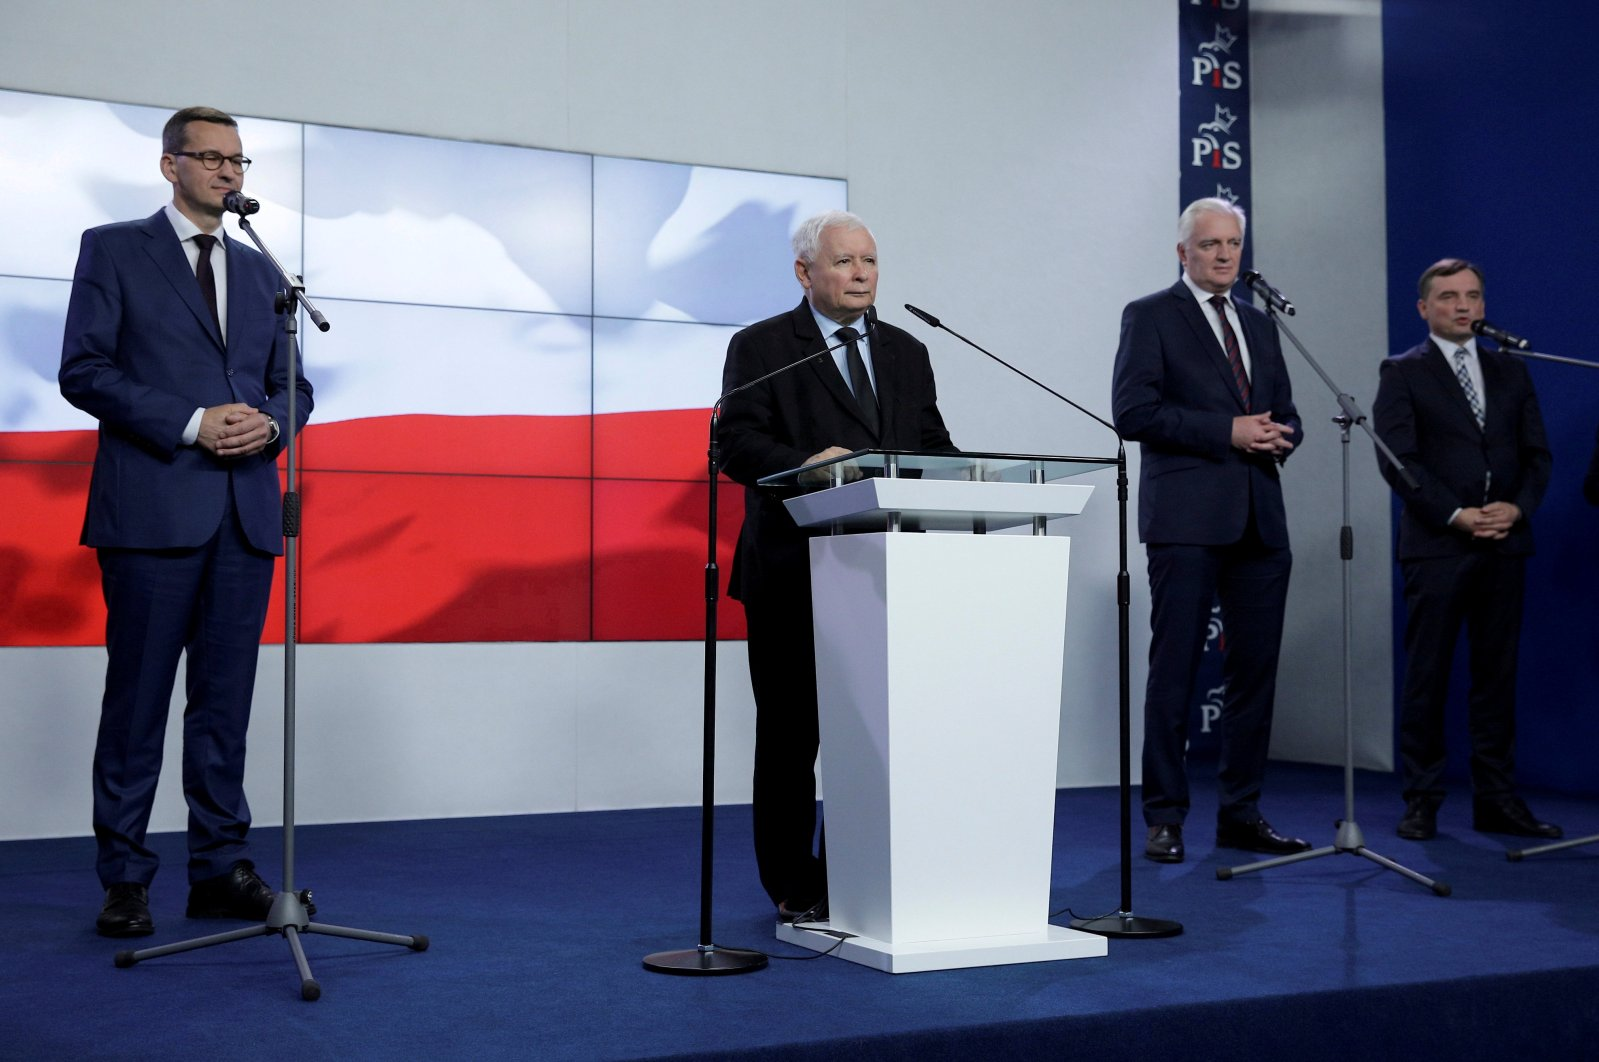 In this photo (L-R) Poland's Prime Minister Mateusz Morawiecki, leader of Law and Justice party Jaroslaw Kaczynski, leader of Agreement party Jaroslaw Gowin, and leader of United Poland party Justice Minister Zbigniew Ziobro, attend a news conference after signing coalition agreement in Warsaw, Poland, Sept. 26, 2020. (Reuters Photo)